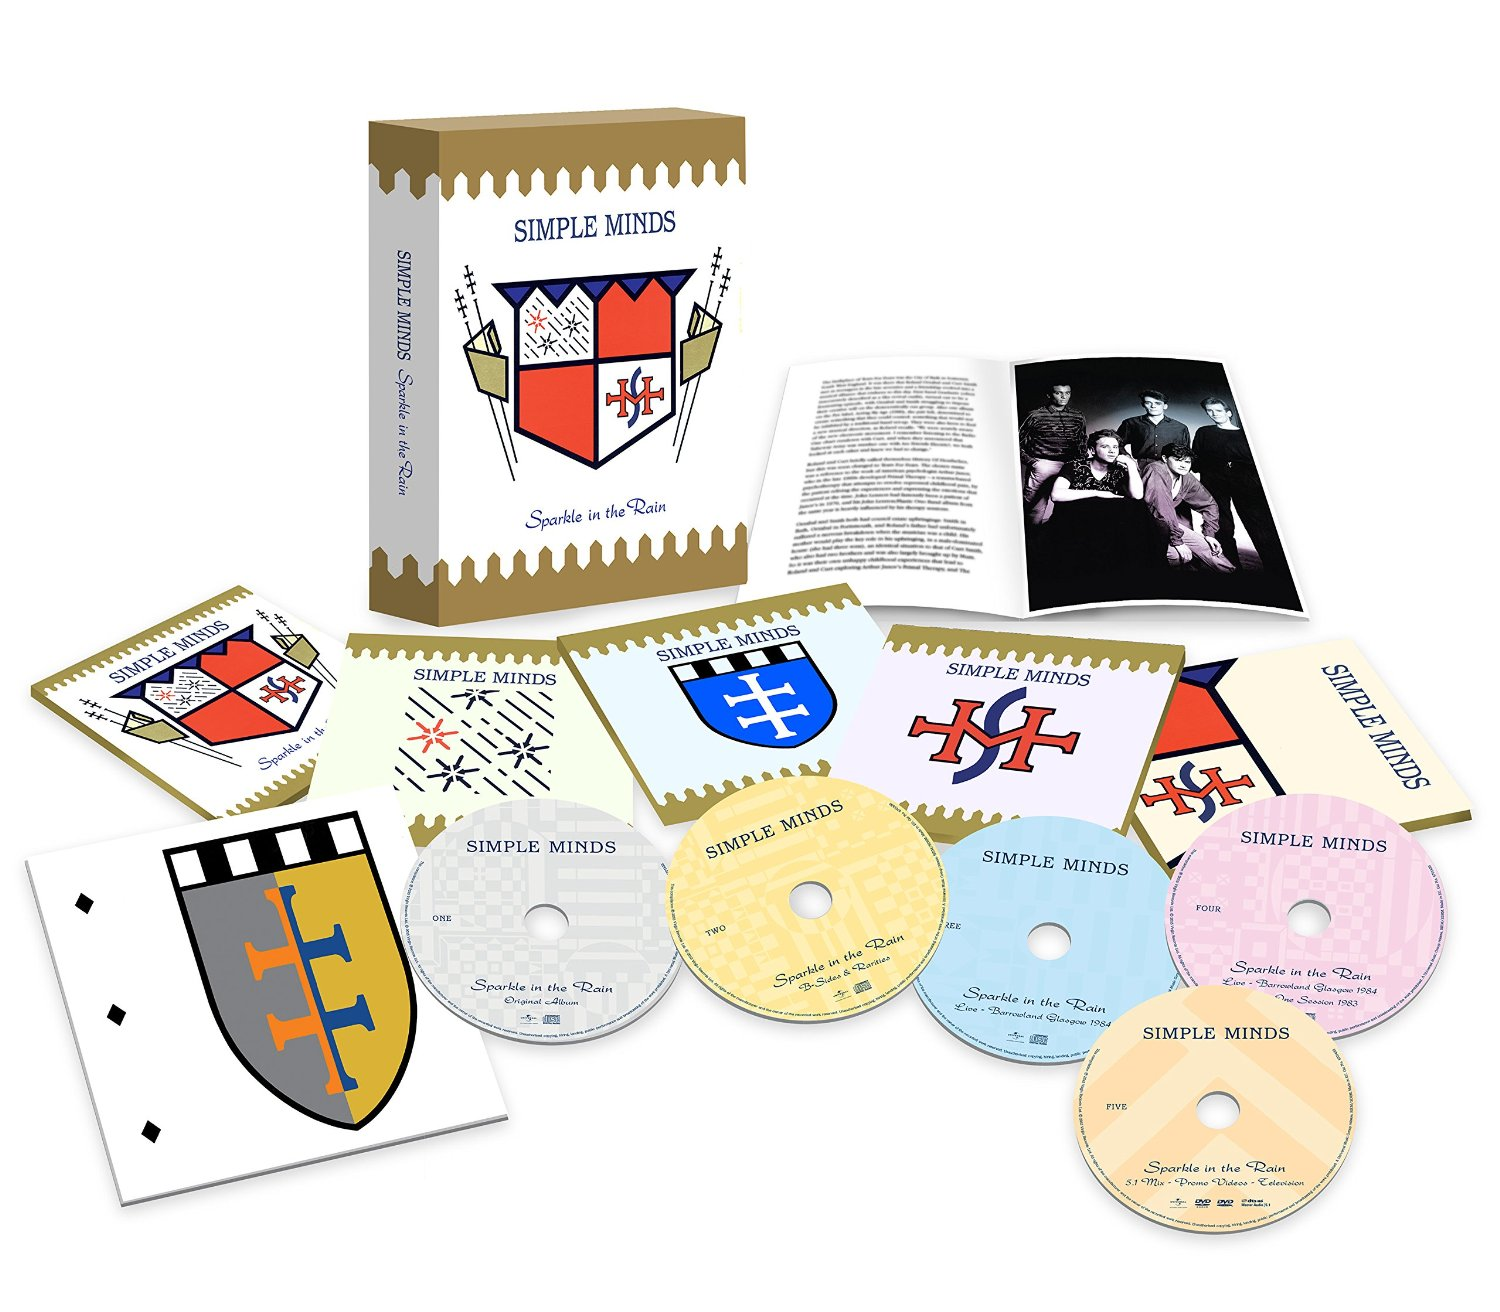 Simple Minds / Sparkle in the Rain five disc super deluxe edition box